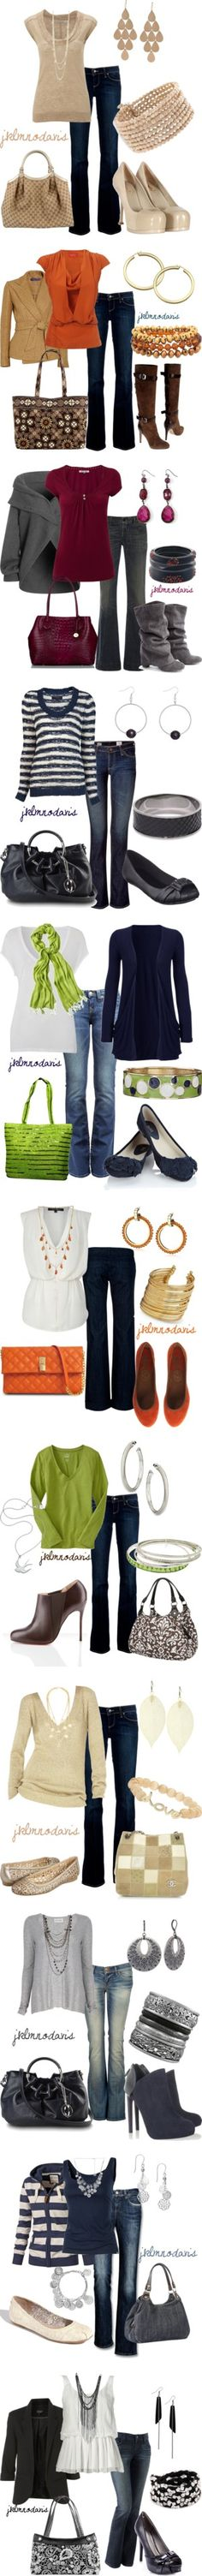 Great fall outfits!